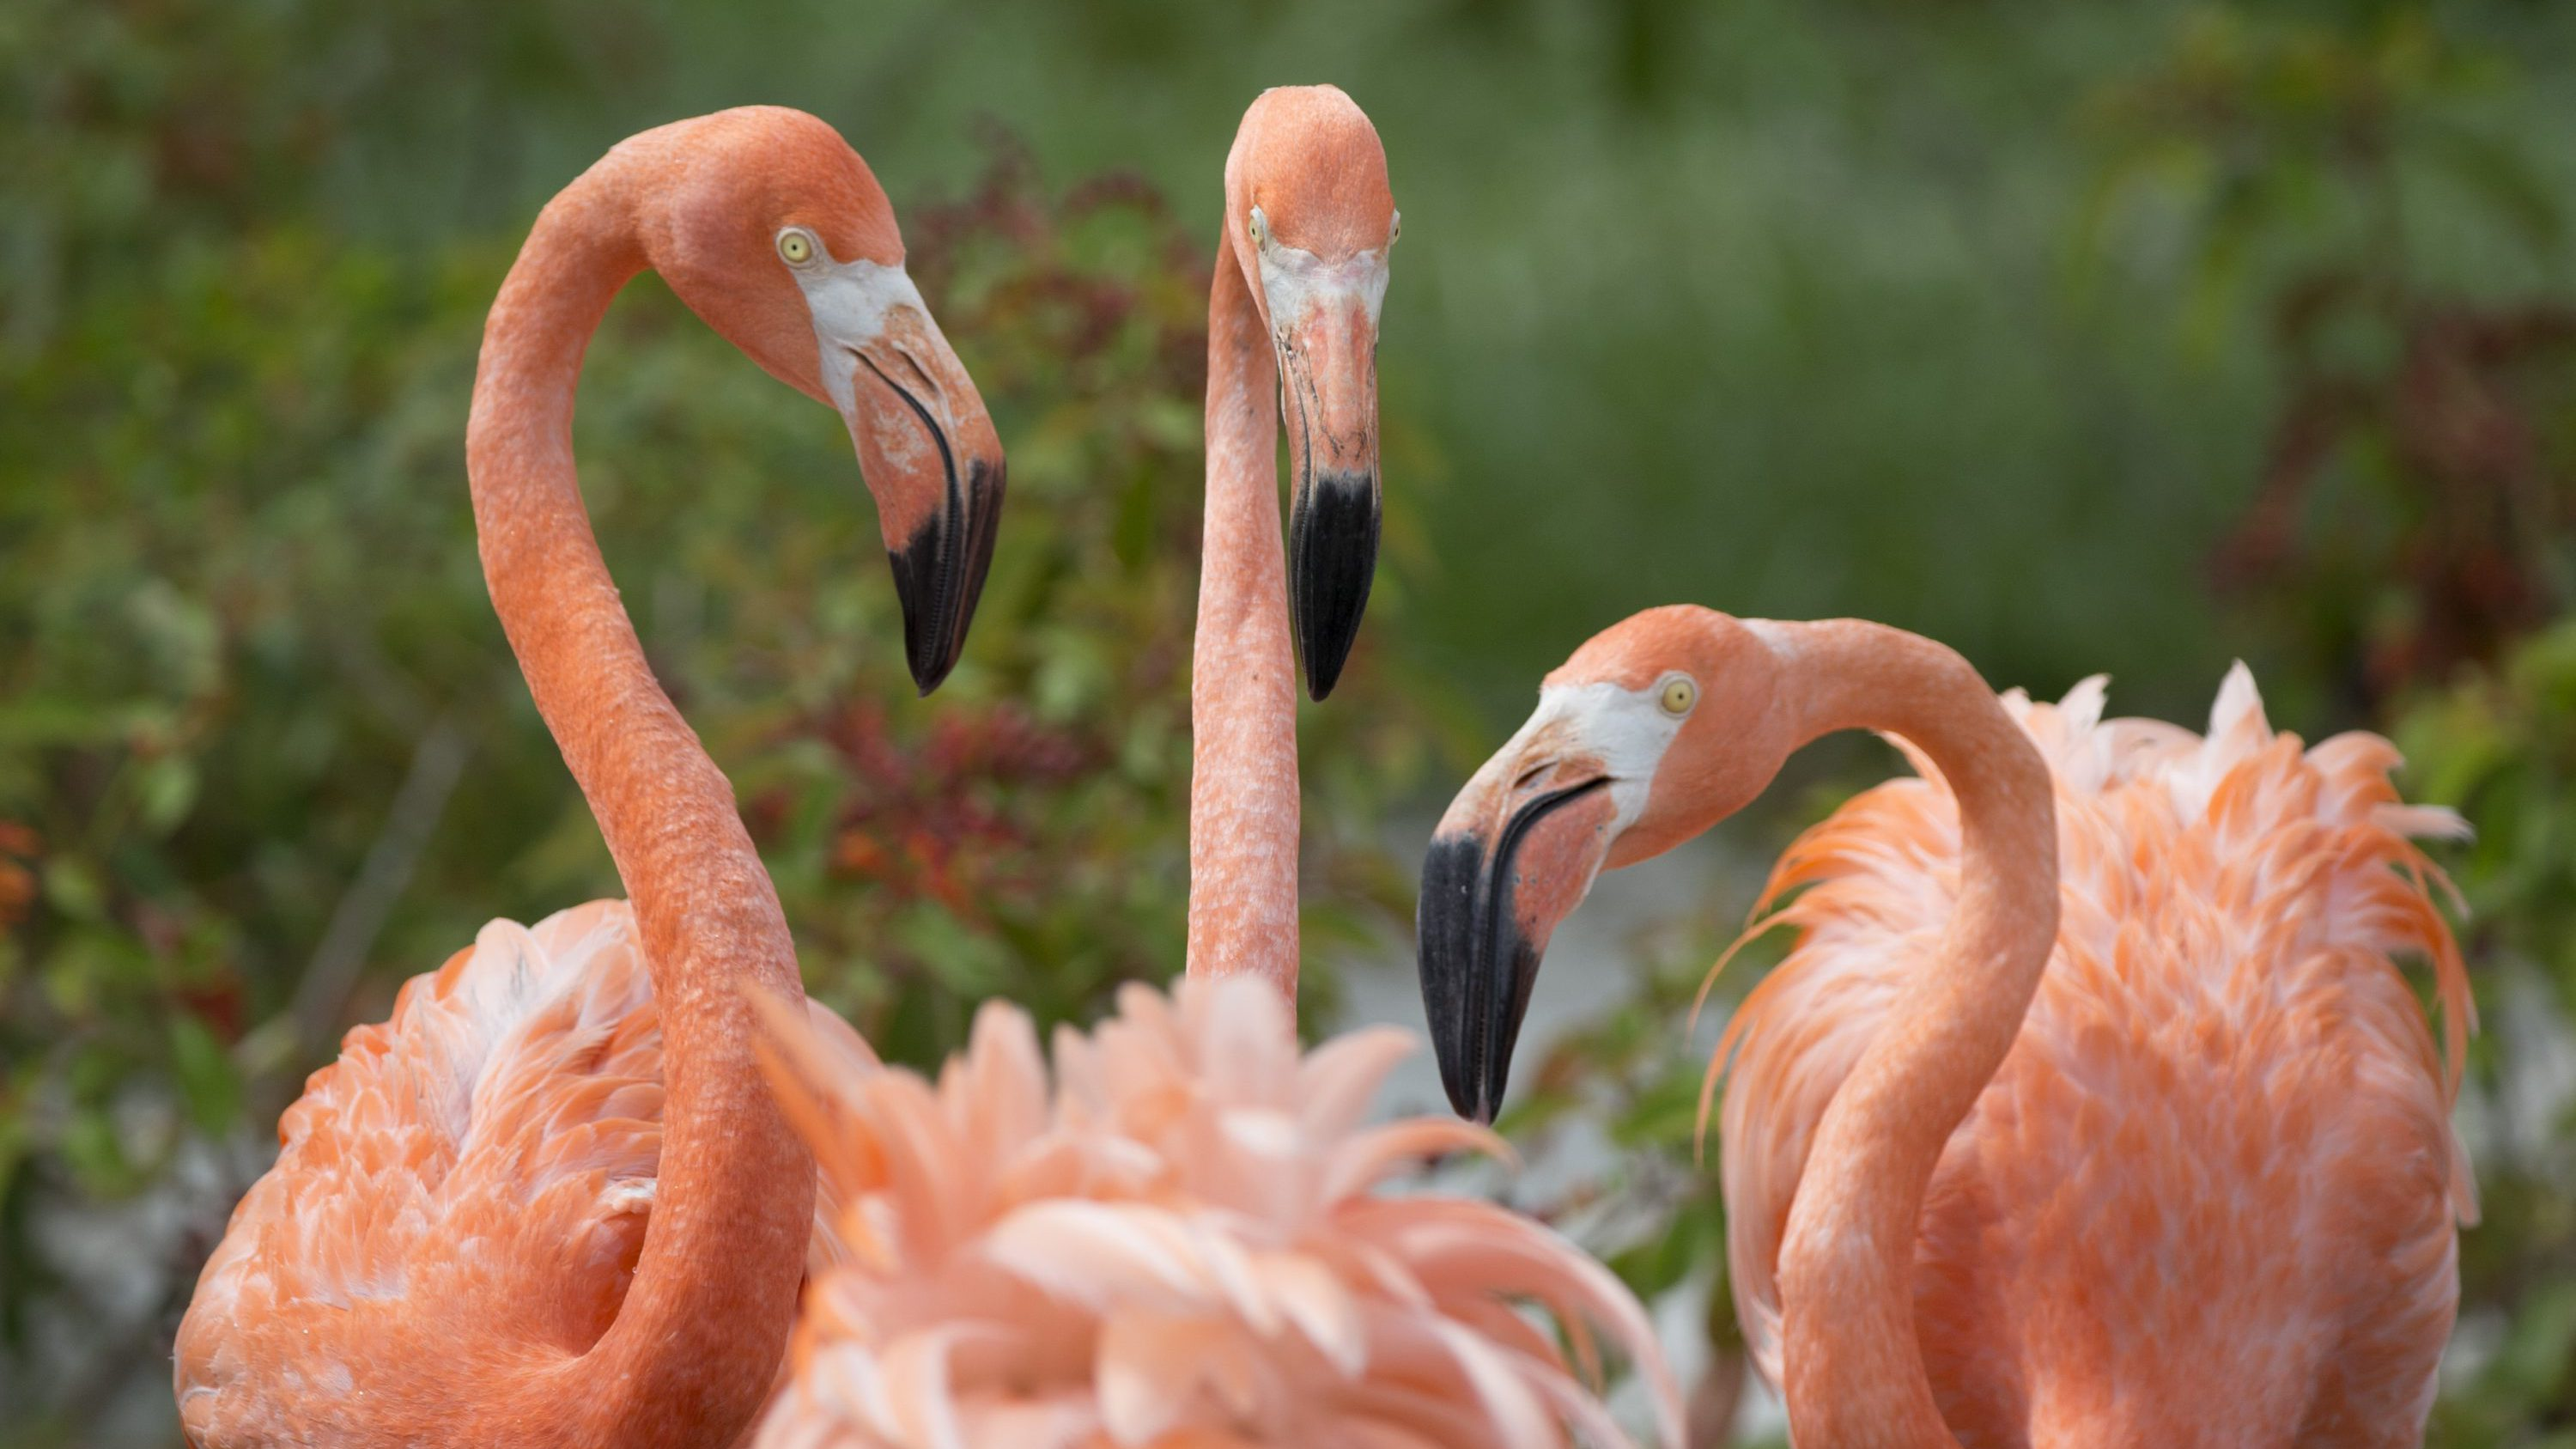 American flamingos gather in their exhibit space at Zoo Miami, Friday, July 15, 2016, in Miami. Zoo Miami unveiled its new $19 million, 1.5 acre entry plaza Friday. (AP Photo/Wilfredo Lee)